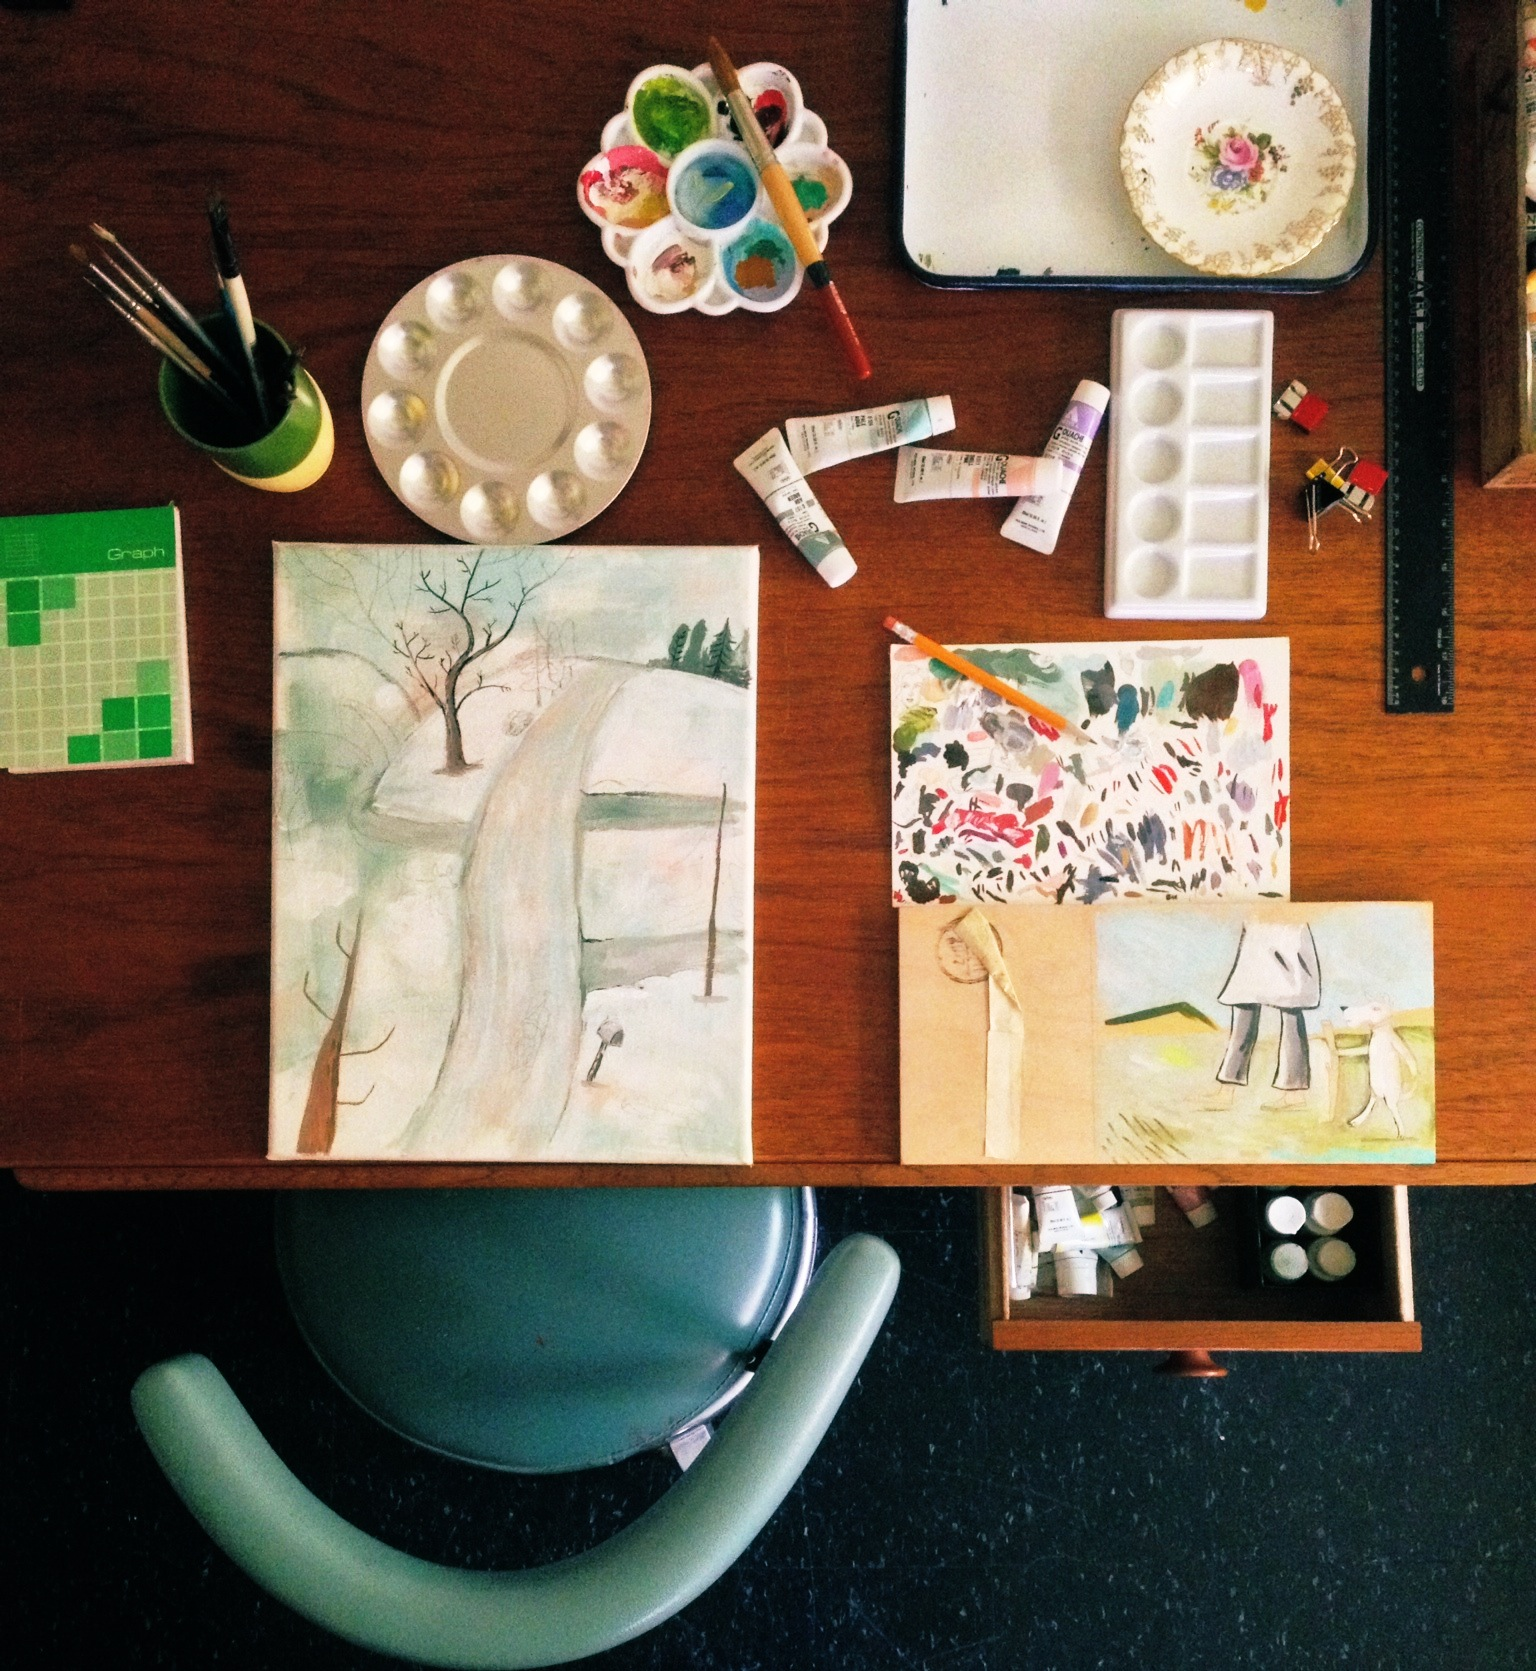 This is my drawing board in the home office. Since I shot this, I have broken that lovely little china saucer that my mom gave me. Art is messy.